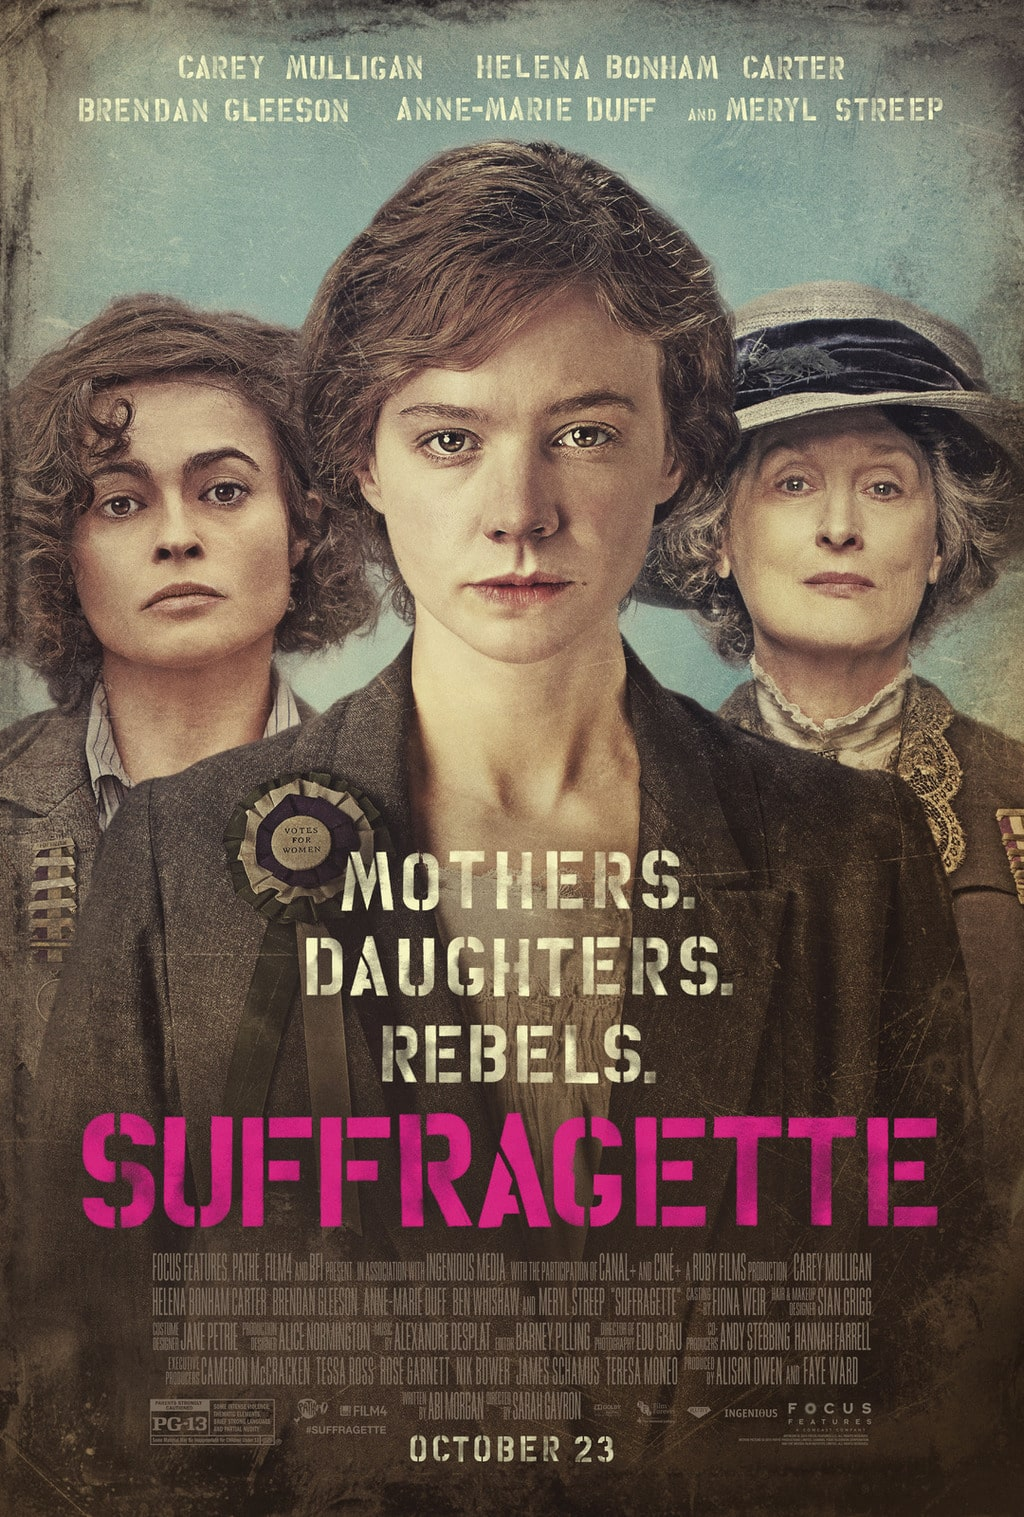 Happy Women's Equality Day and Suffragette Film Trailer #SUFFRAGETTE